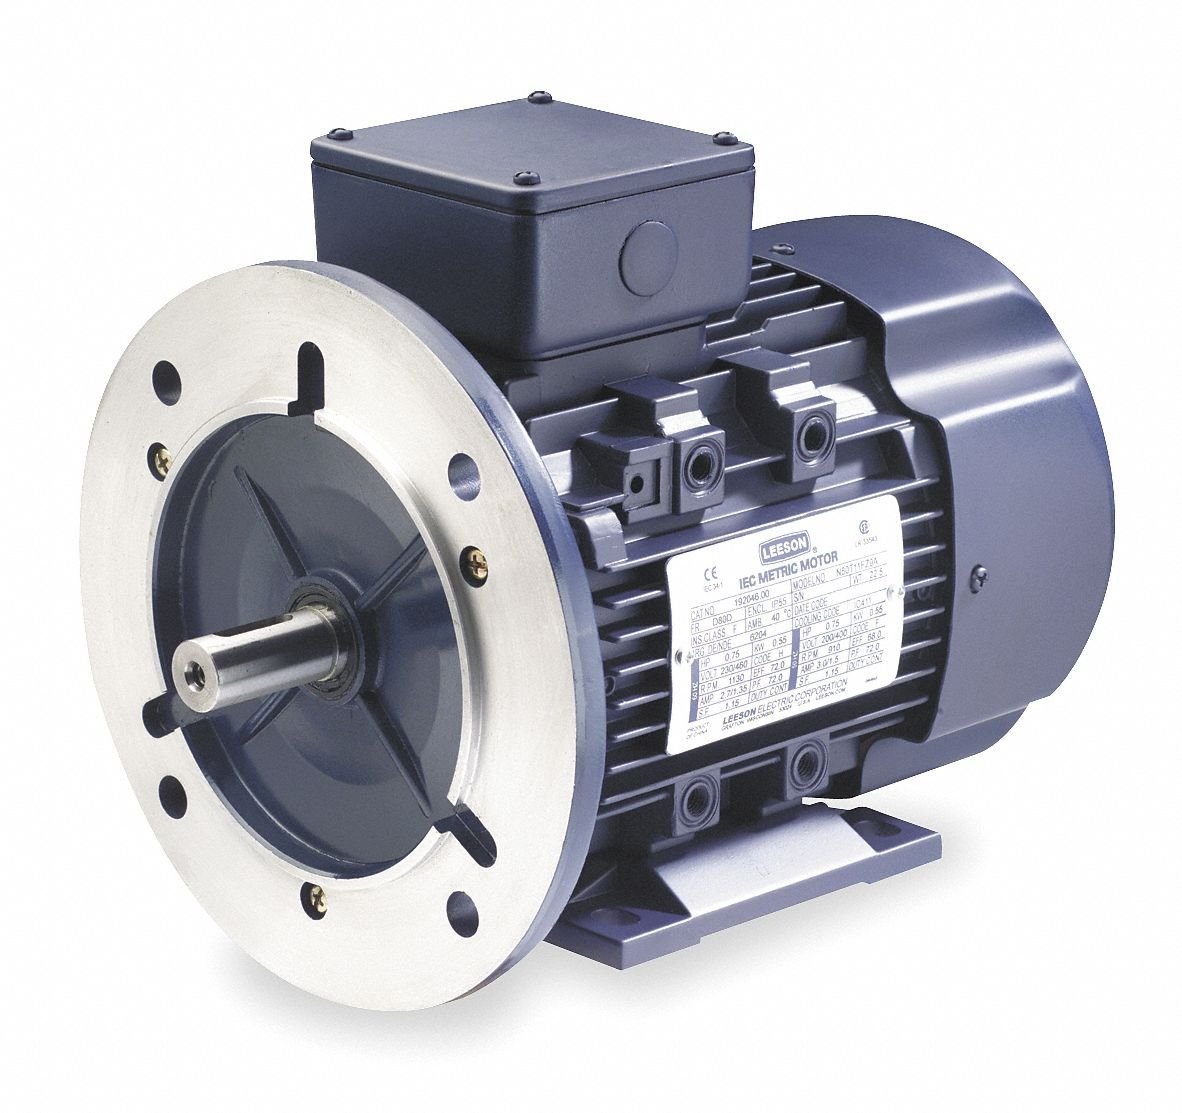 Leeson 1/3 HP Metric Motor,3-Phase,1705 Nameplate RPM,230/460 Voltage,Frame D71D